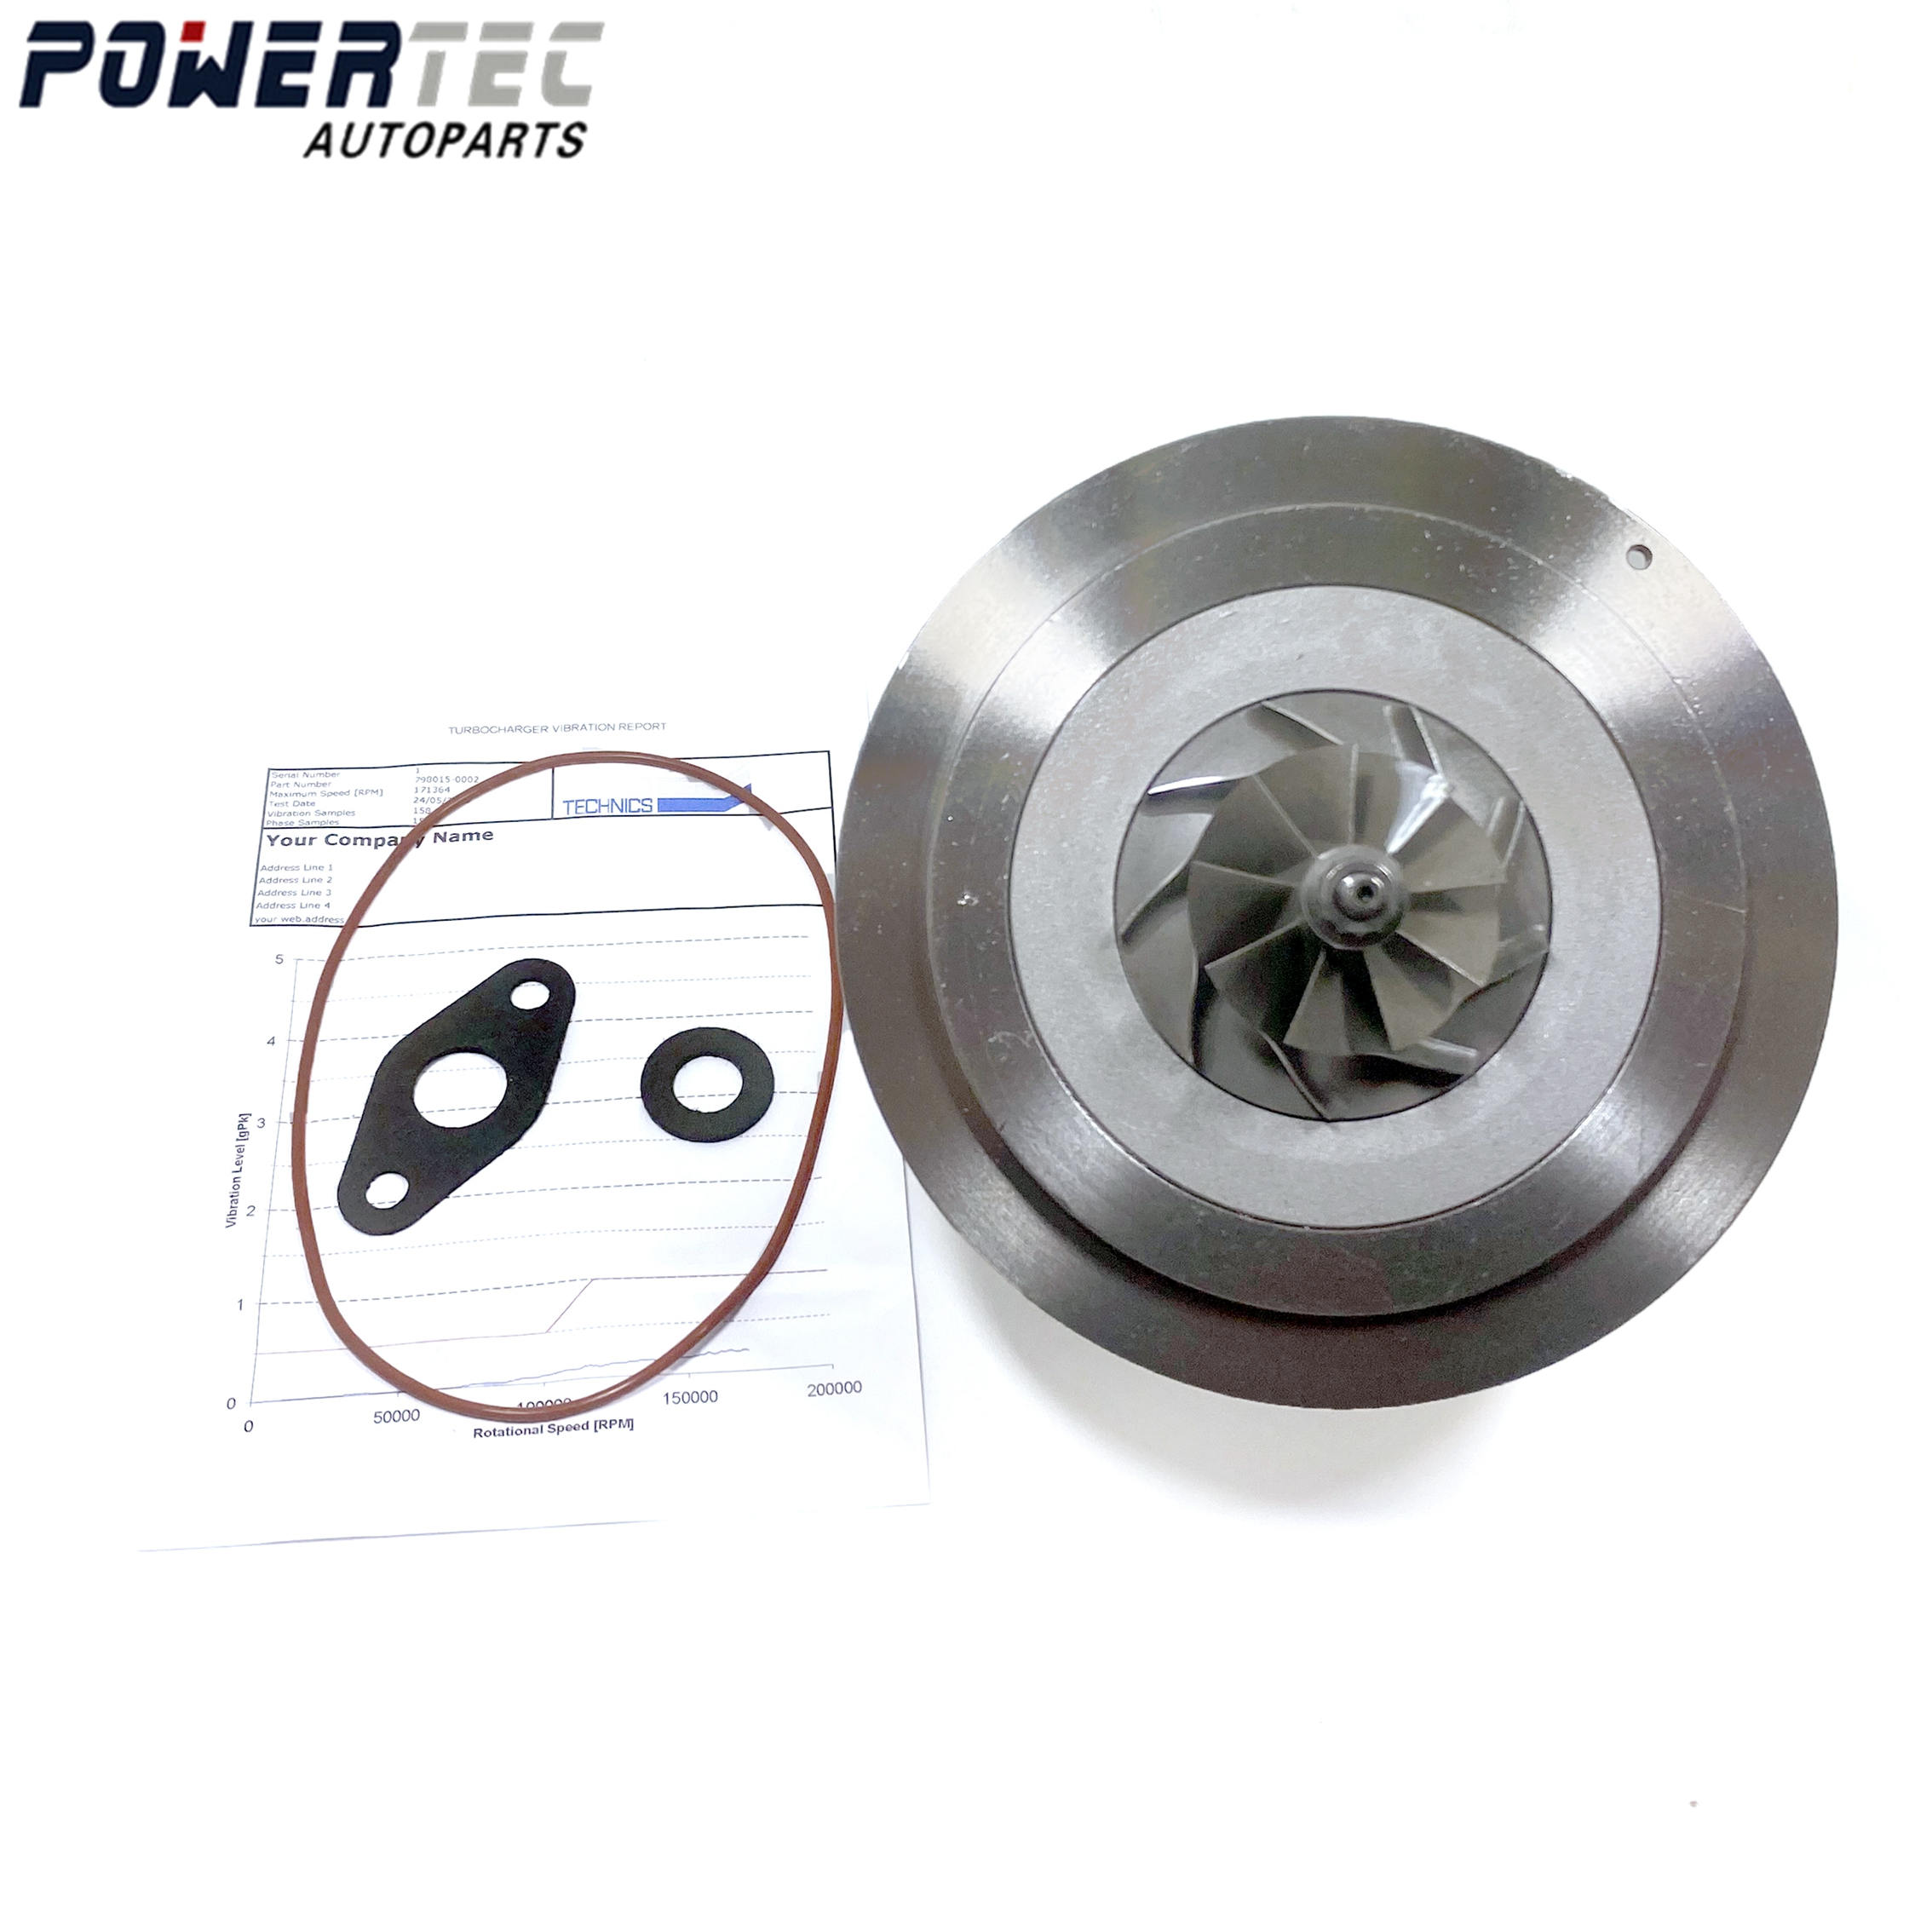 Turbine GTB1752VLK 798015 A6710900380 798015-5002S turbocharger chra for Ssang Yong Korando <strong>C</strong> 200 <strong>127</strong> Kw 173 HP D20DTF 2010